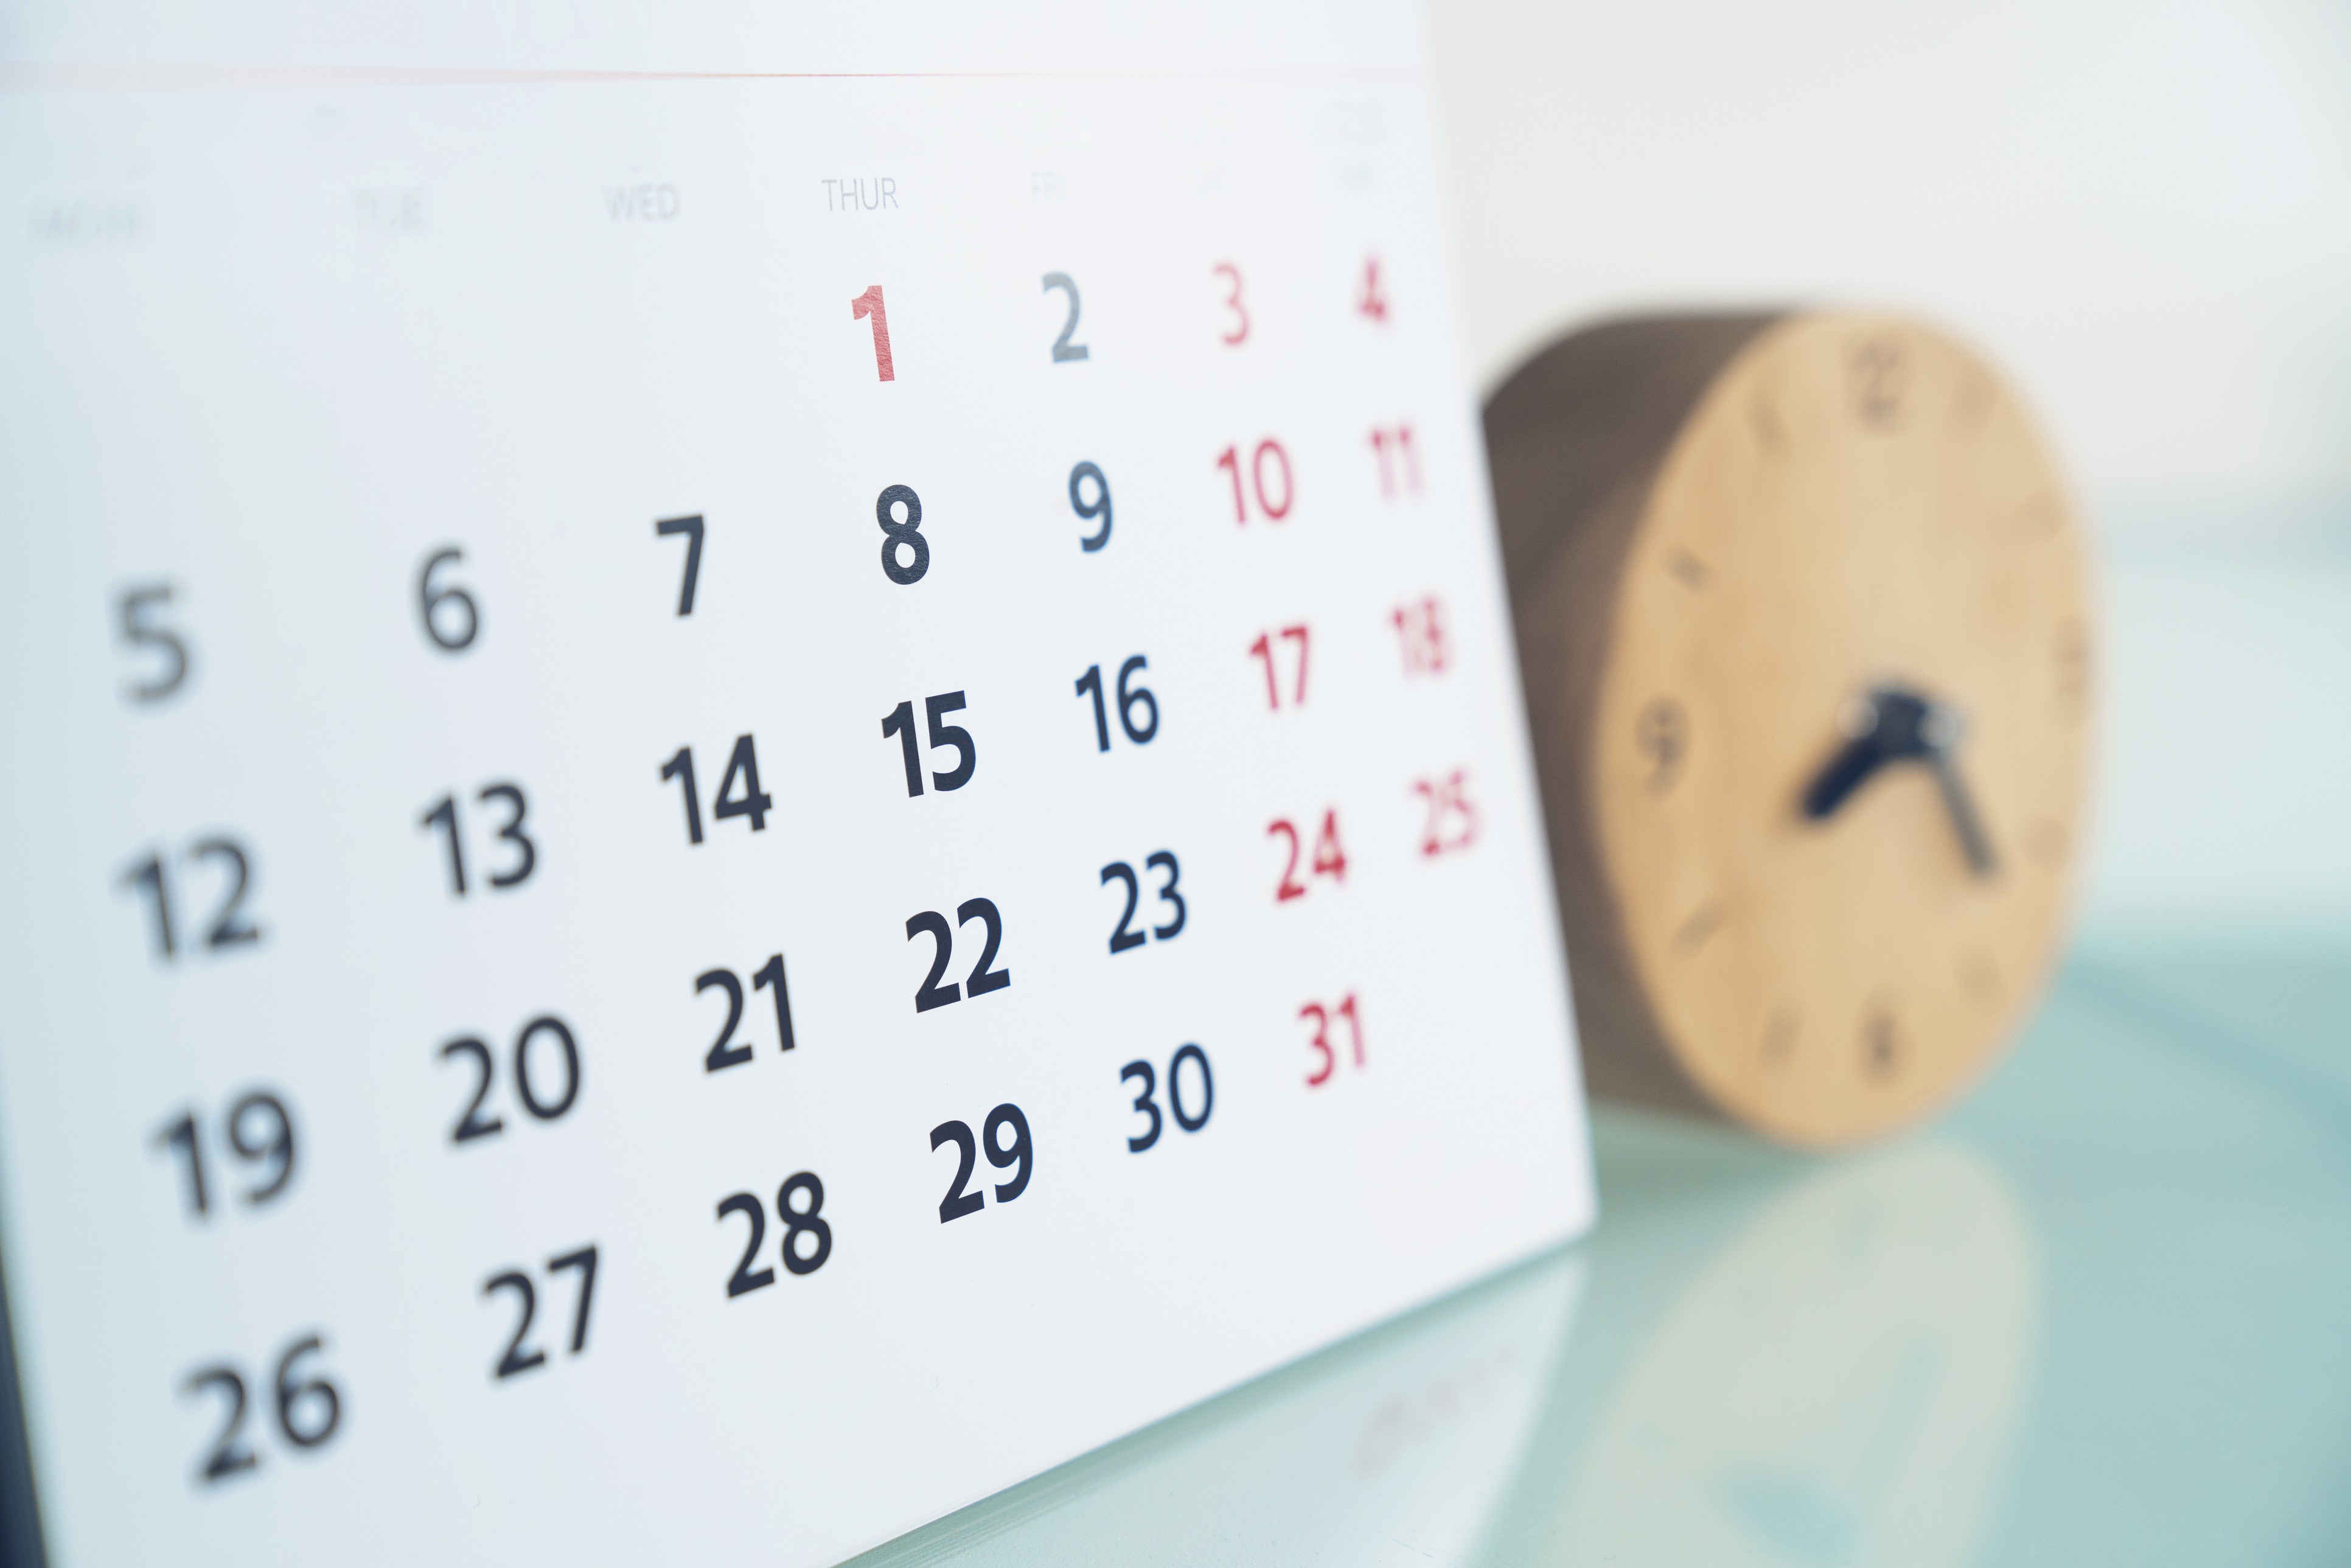 Online Dating: How Many Days In Advance Should I Schedule A Date?